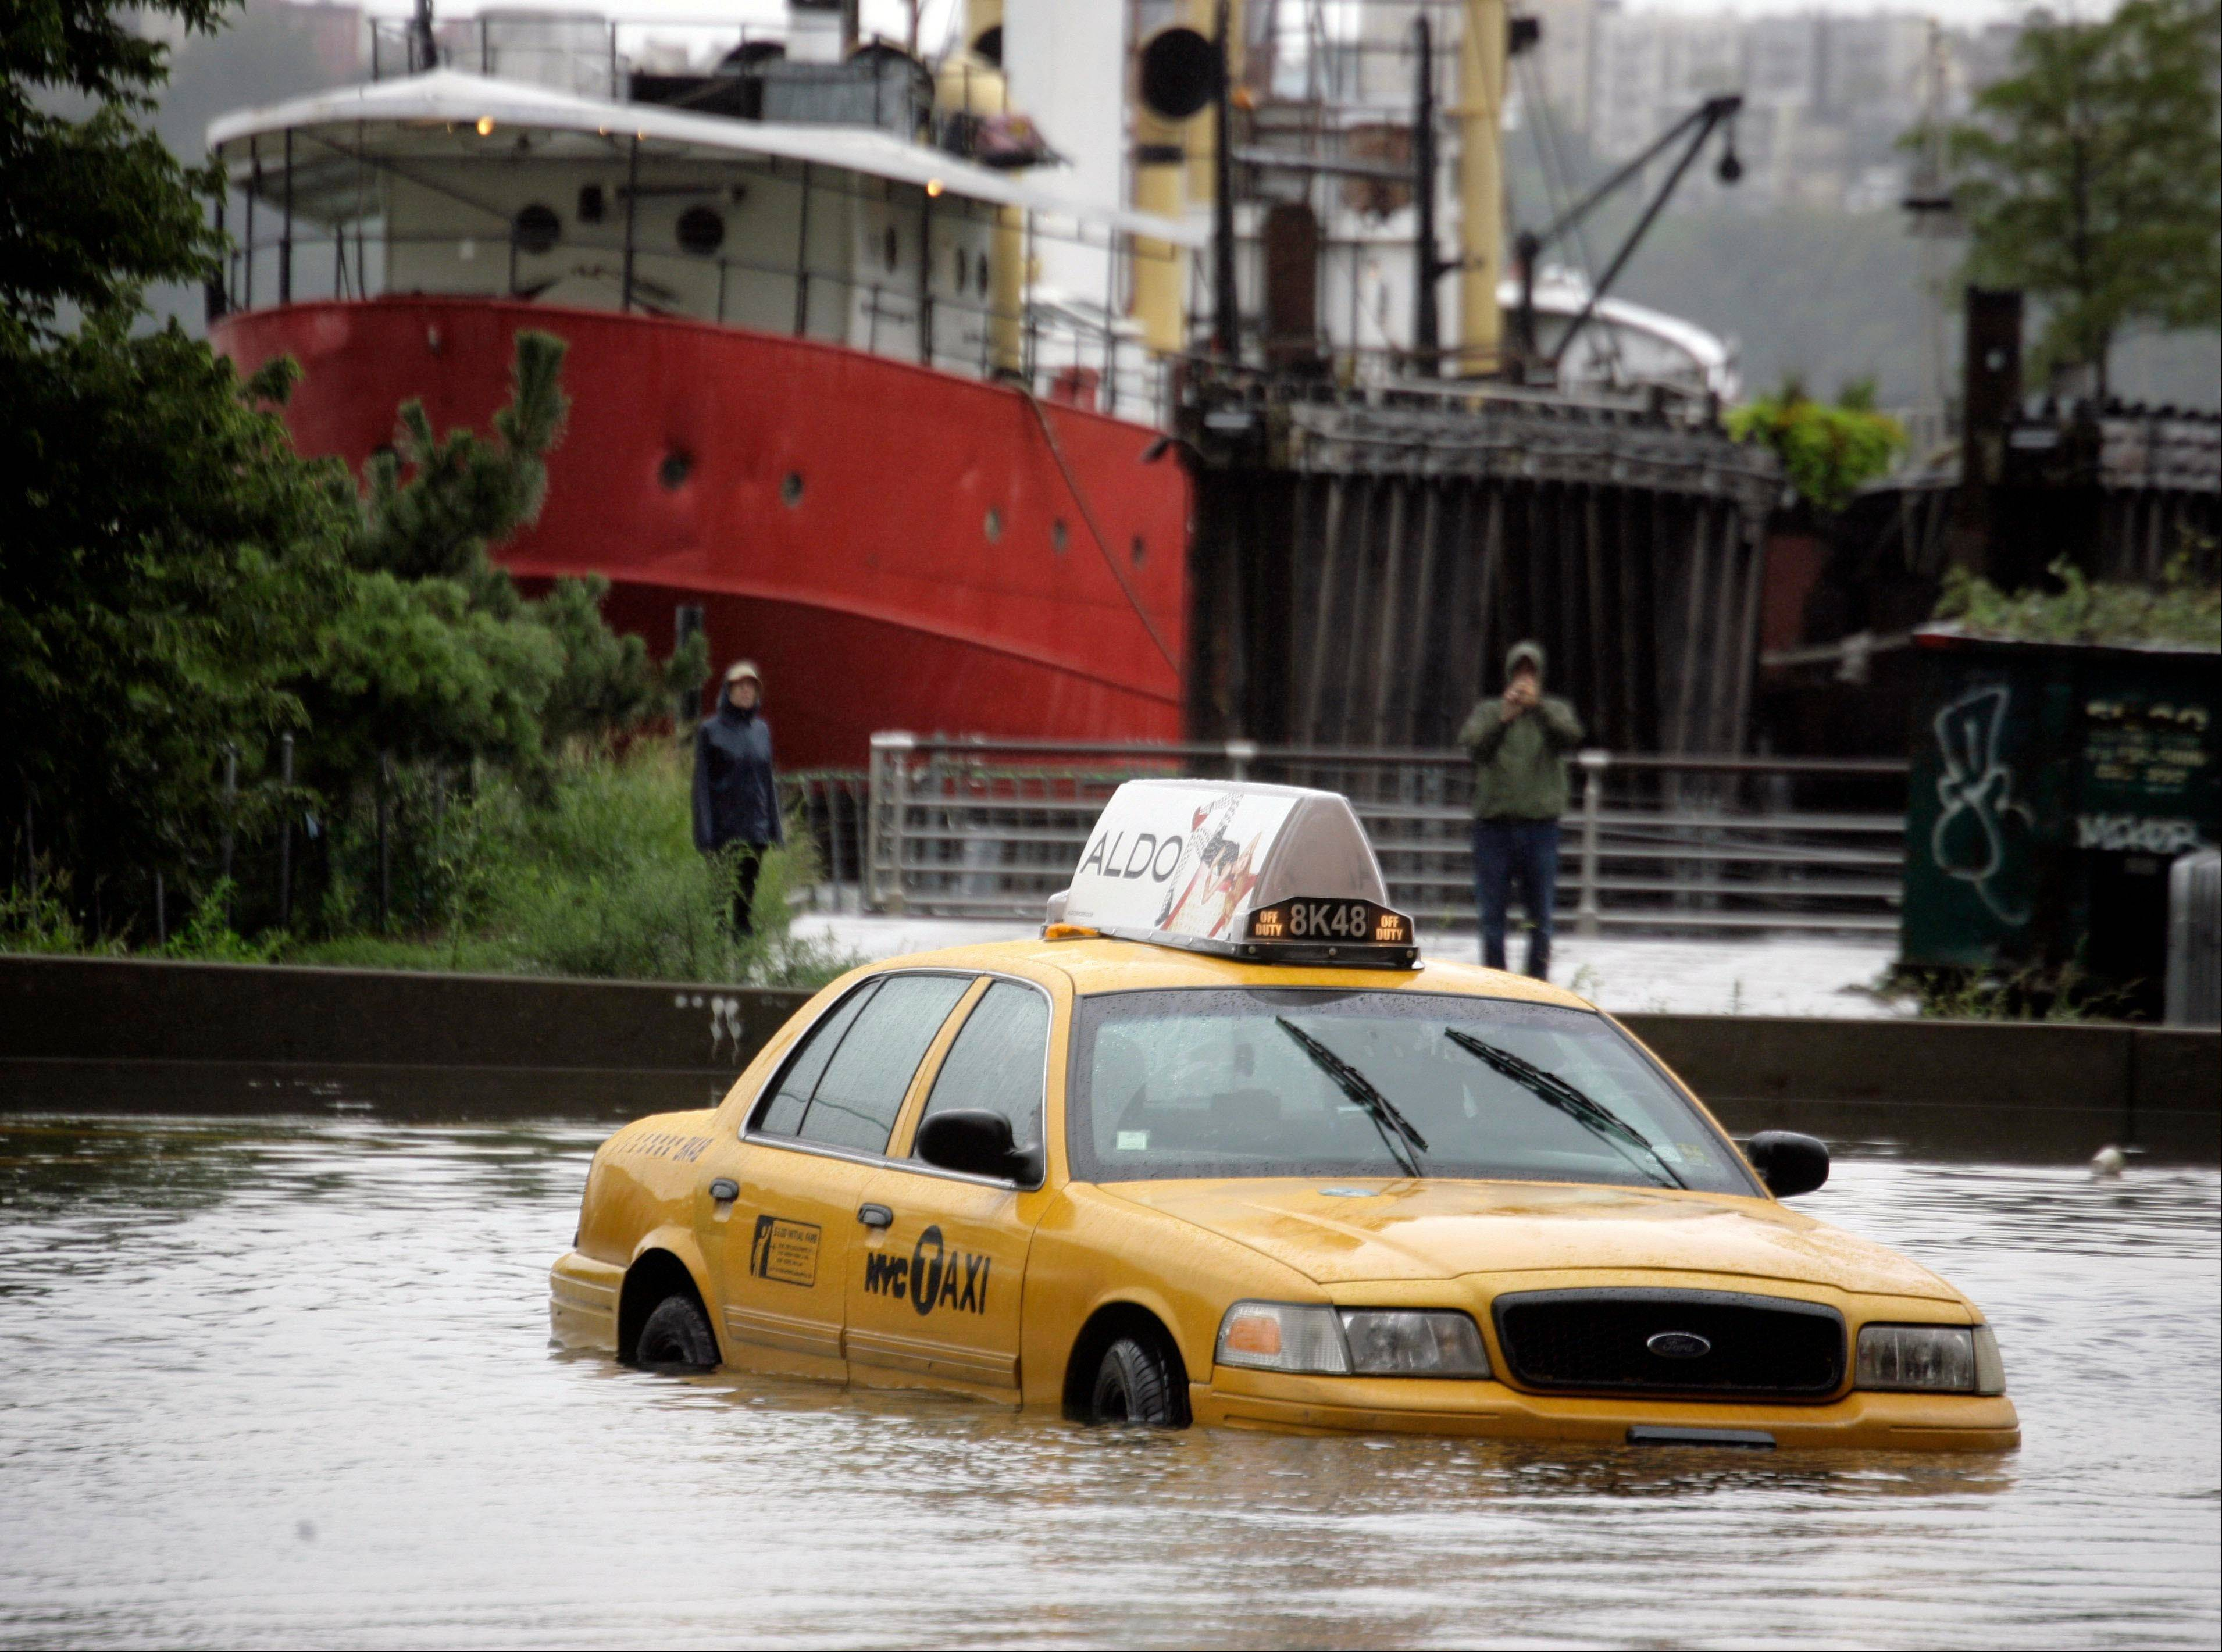 A New York City taxi is stranded in deep water on Manhattan�s West Side as Tropical Storm Irene passes through the city, Sunday, Aug. 28, 2011 in New York. Although downgraded from a hurricane to a tropical storm, Irene�s torrential rain couple with high winds and tides worked in concert to flood parts of the city.